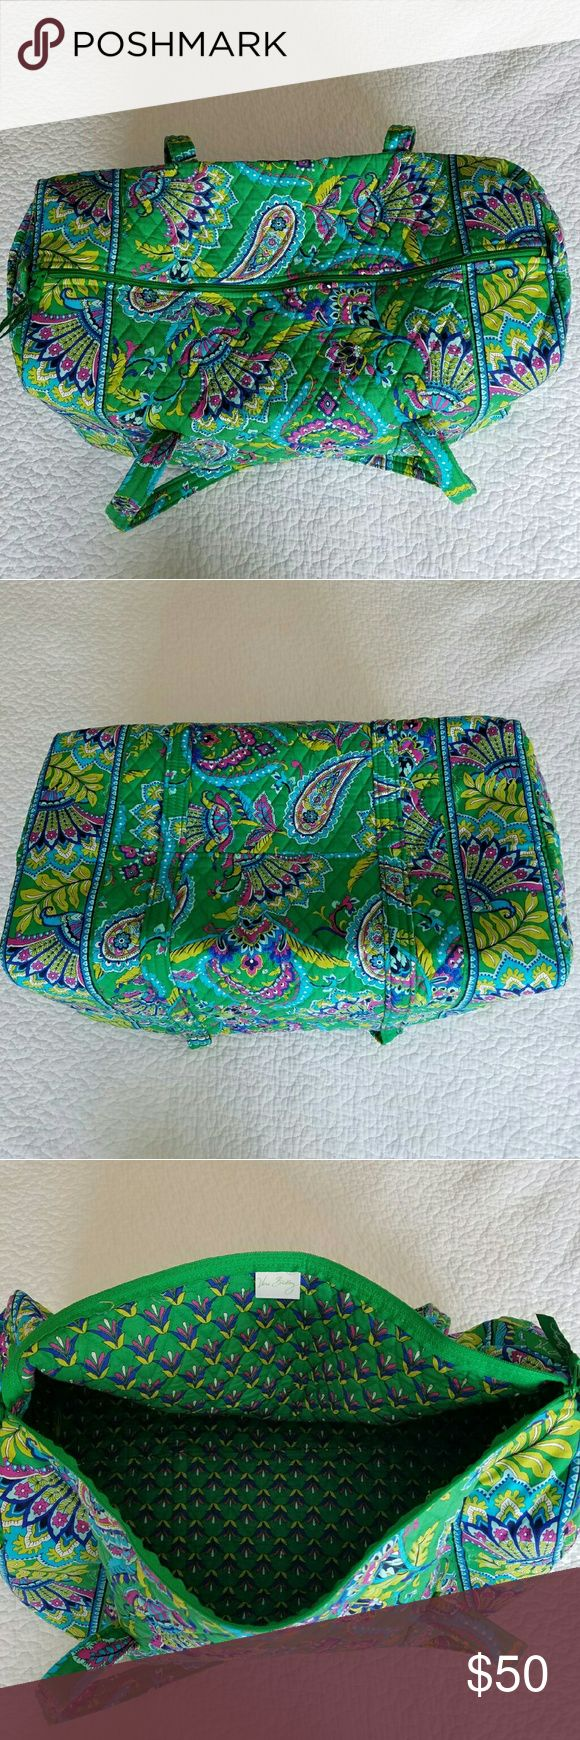 """**SOLD** Large Duffel Emerald Paisley Vera Bradley **SOLD**  Large Duffel in Emerald Paisley by Vera Bradley in excellent condition  Dimensions 22"""" W x 11.5"""" H x 11.5"""" D with 15"""" strap drop One outside end pocket  Purchased from Vera store several months ago. Used quite a but still in excellent condition. Fabric softened from slight use but otherwise like new. Fabric and lining show no fading, wear, marks, or stains inside or out.  Smoke free, cat friendly home. Please ask questions. Fair…"""